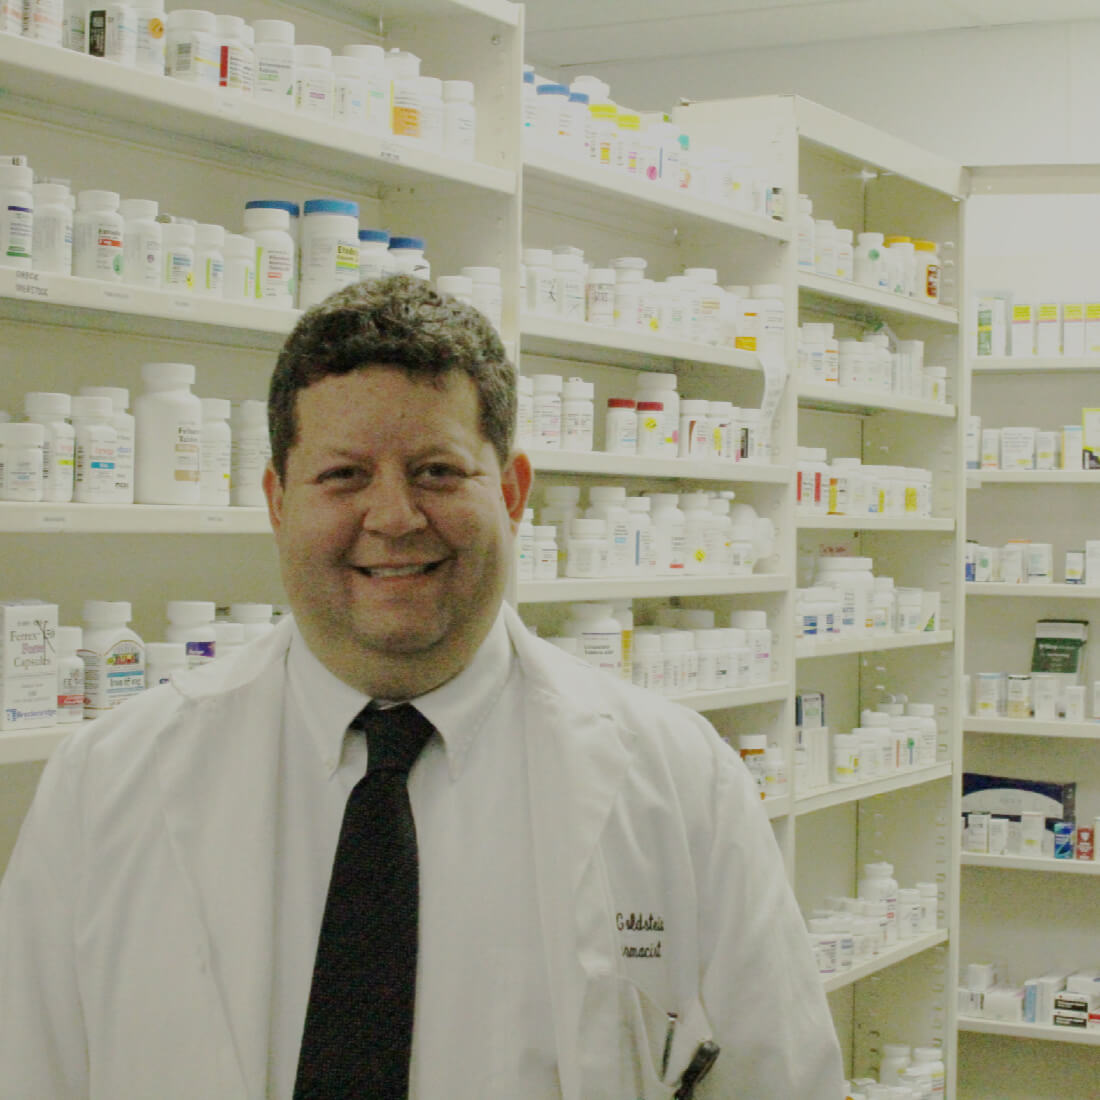 Eric Goldstein graduated from Mercer University's College of Pharmacy with his Doctorate of Pharmacy and is a Compounding Specialist. He's practiced pharmacy with Lacey's for ten years. A fun fact about him is that he played varsity tennis for the University of Montana and started all four years.